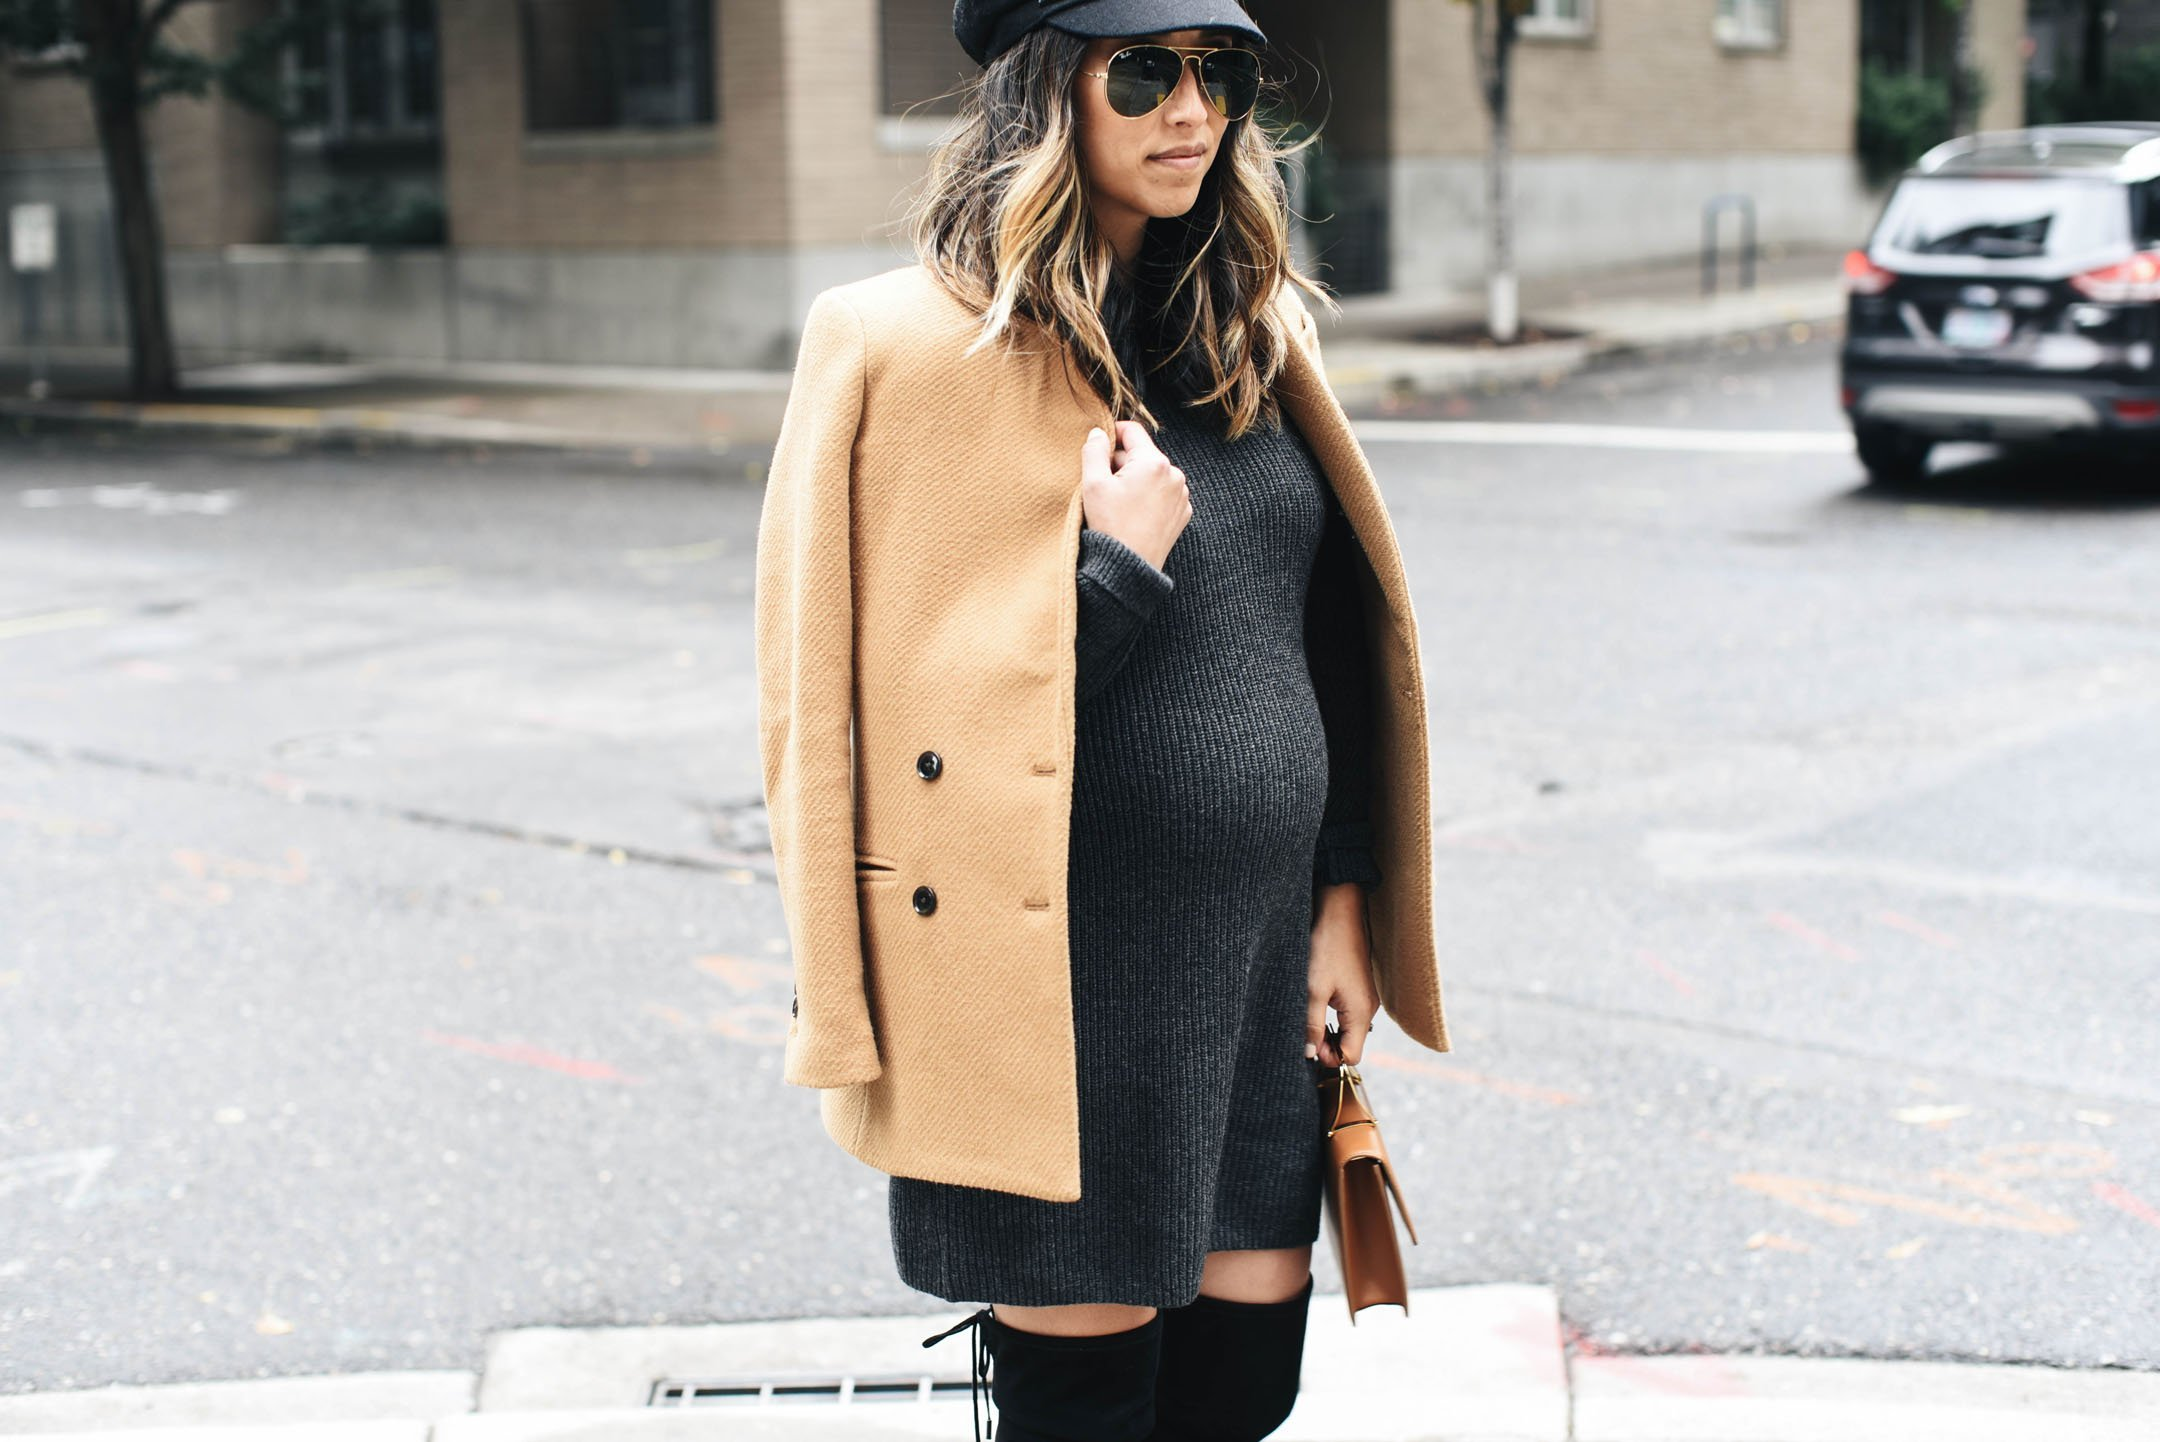 How to style a sweater dress in the fall